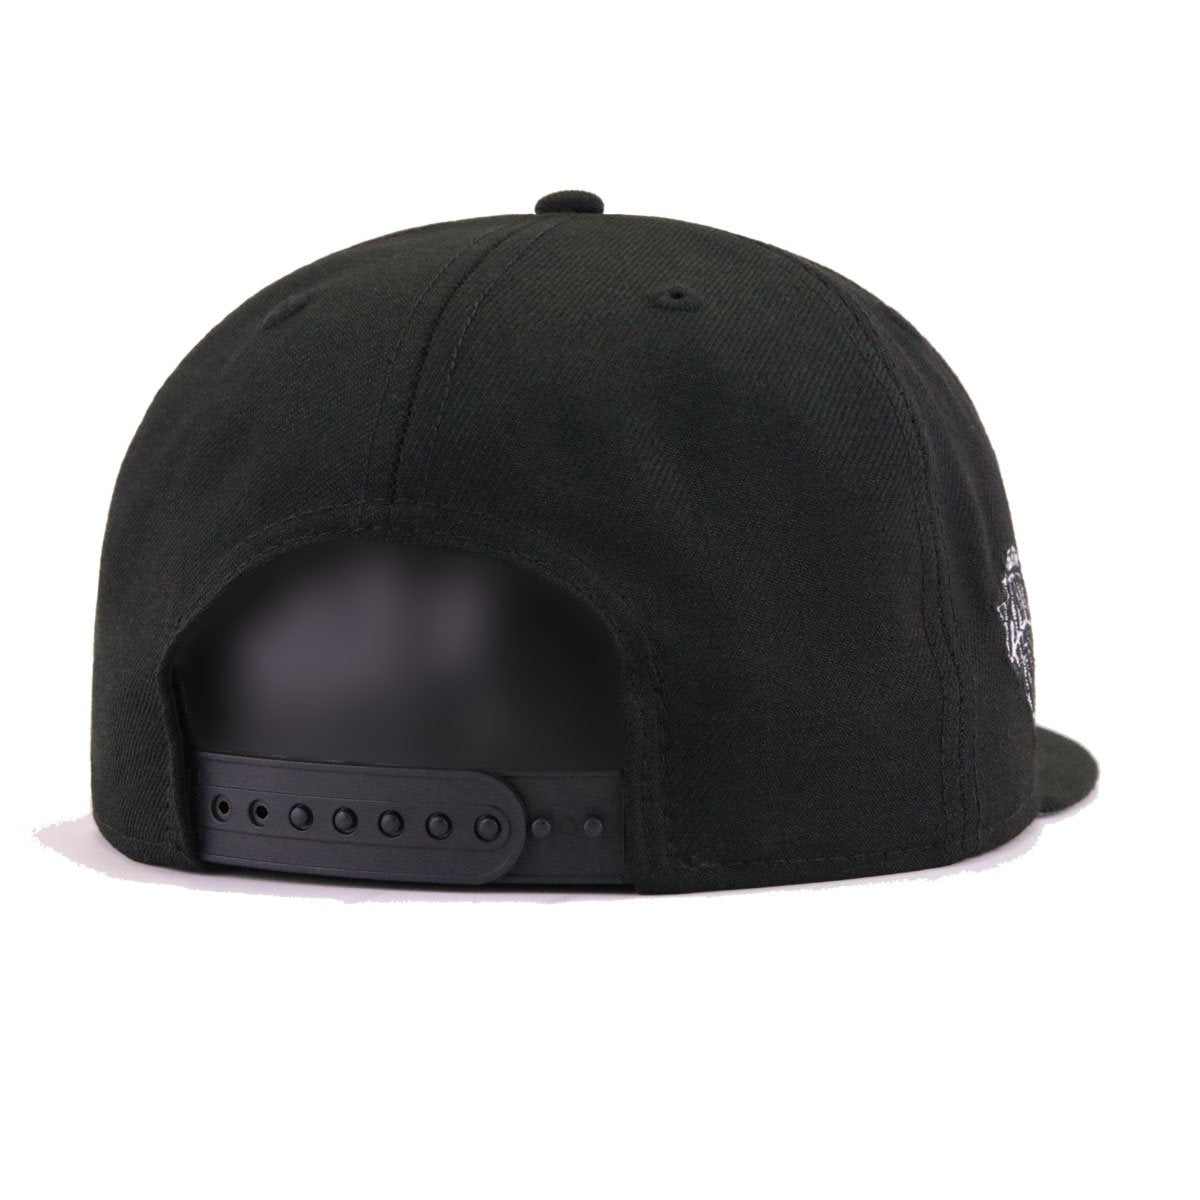 New York Knicks Black White Tilted Lines New Era 9Fifty Snapback